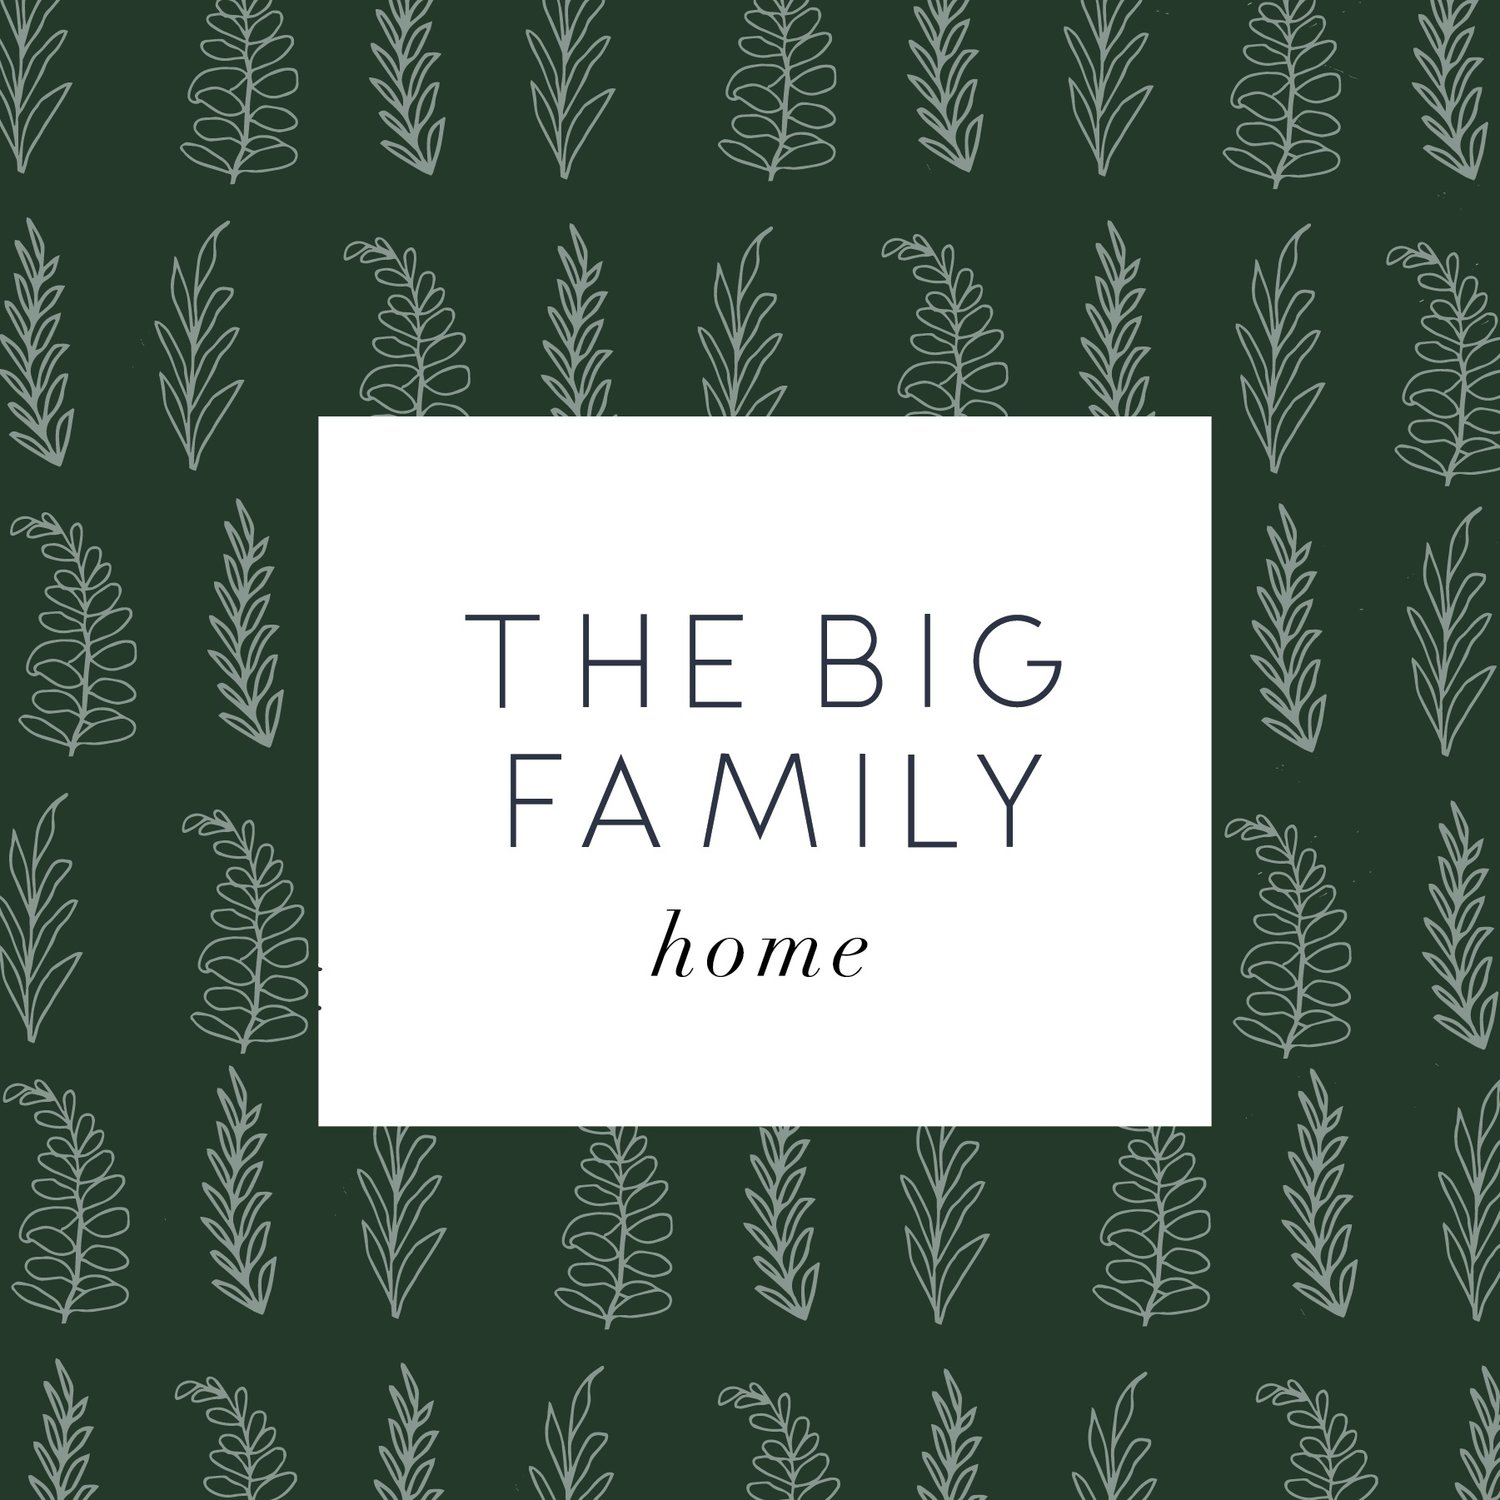 The Big Family Home